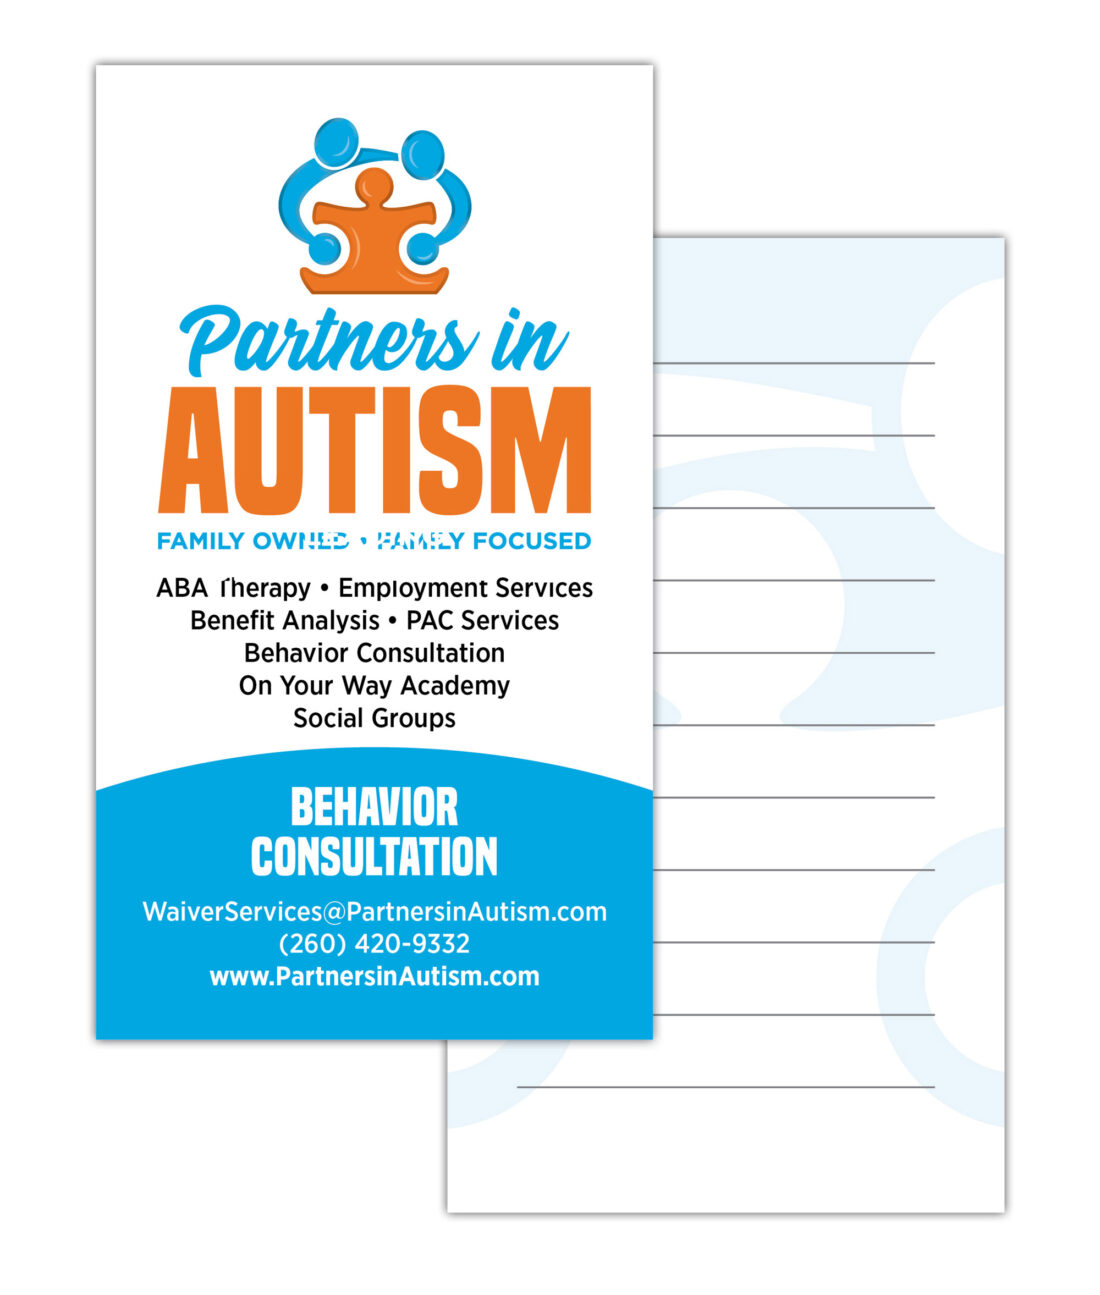 partners in autism logo and business card design